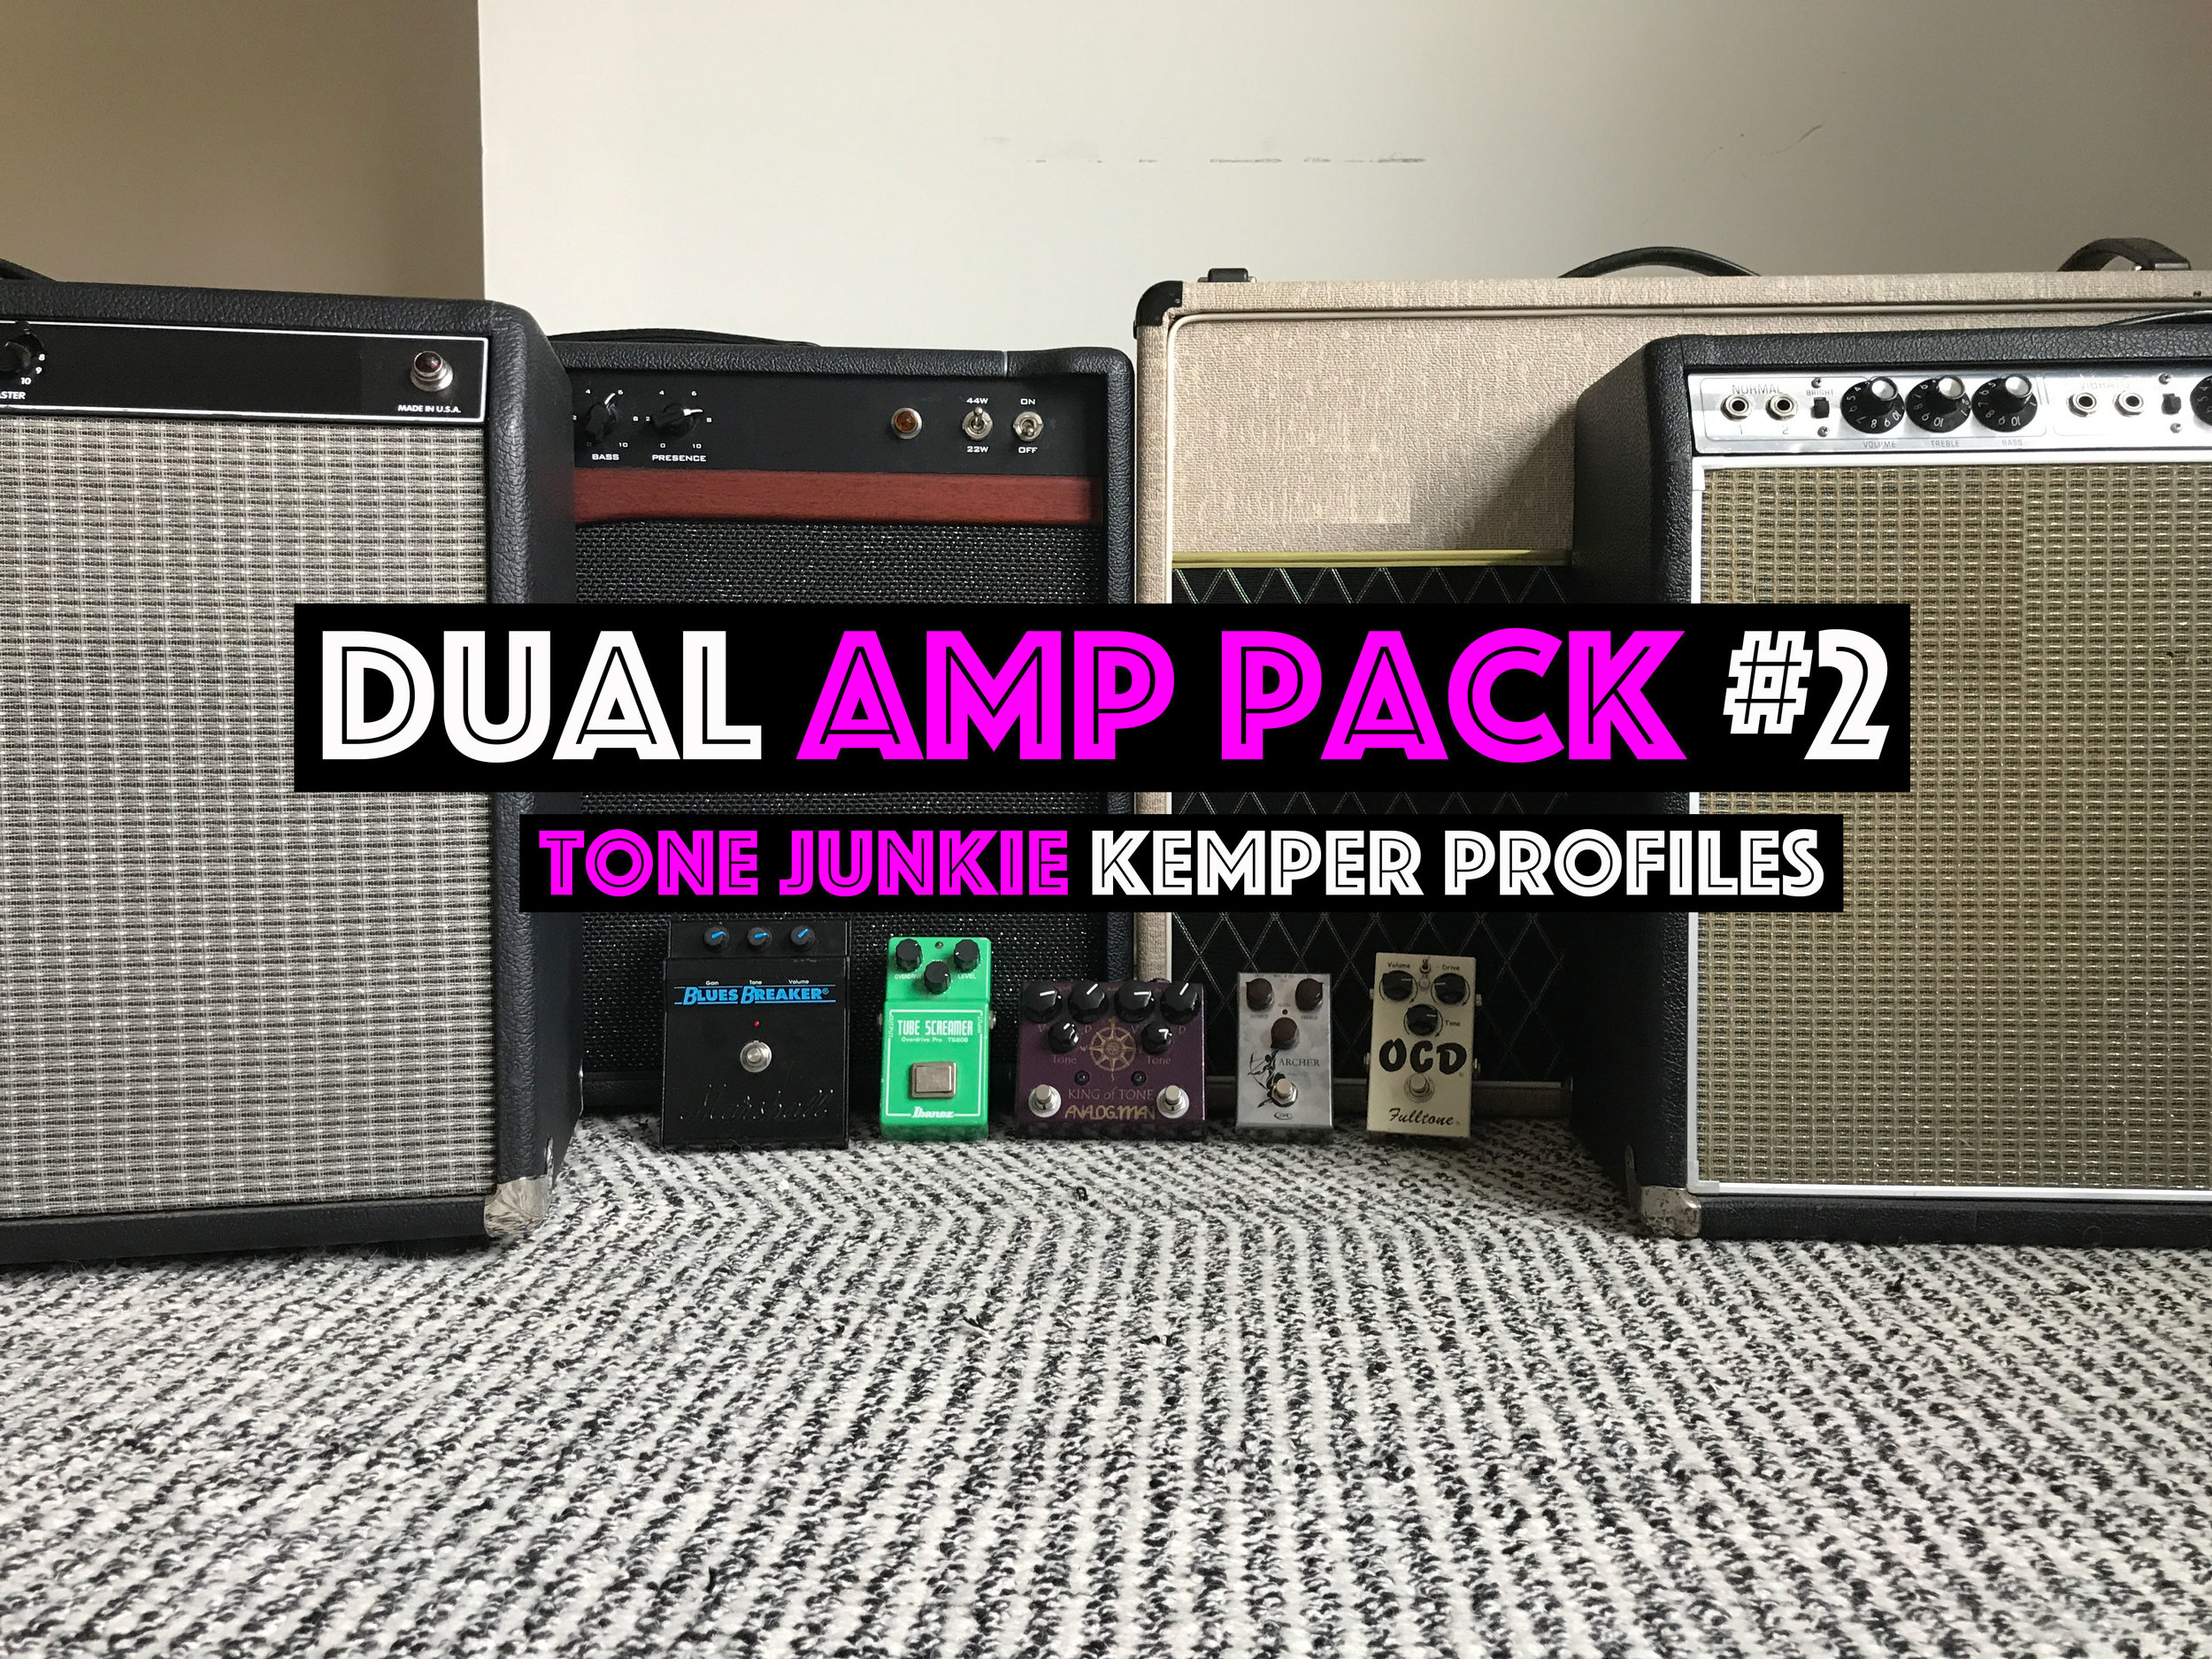 Dual Pack #2! - The Dual Amp #2 Pack from Tone Junkie captures the sound of some of the most iconic amp pairings heard on Sunday Mornings and Friday nights. If you have every wished the ACE 30 pack has a bit more oomph in the low end check out the AC30 Beauty profile set. If you are looking for American and British high end competing for your attention check out the ACE30 Rolex set. And of course how about the signature amp pairings and signature settings from some of the P&W Elite. Check out the